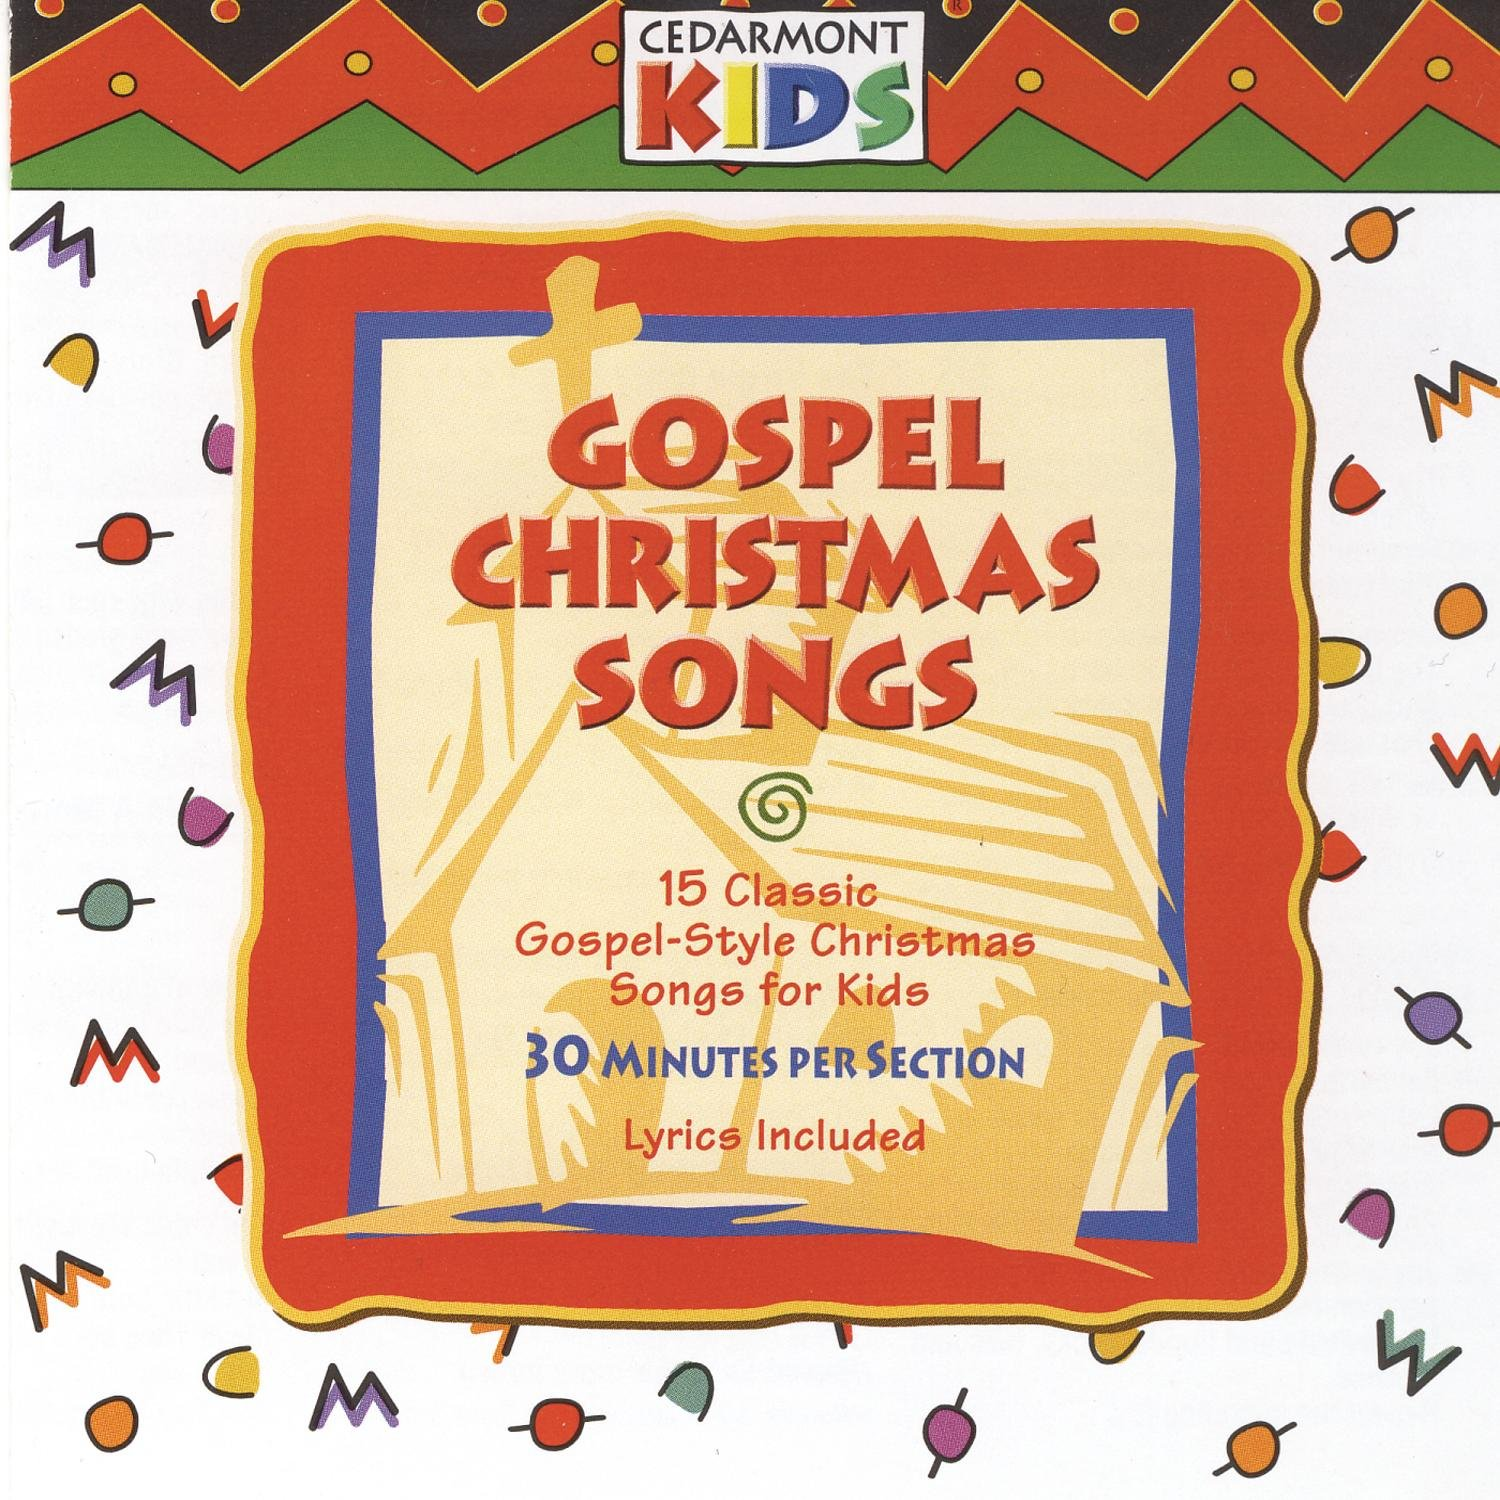 cedarmont kids gospel christmas songs amazoncom music - Christmas Songs For Kids